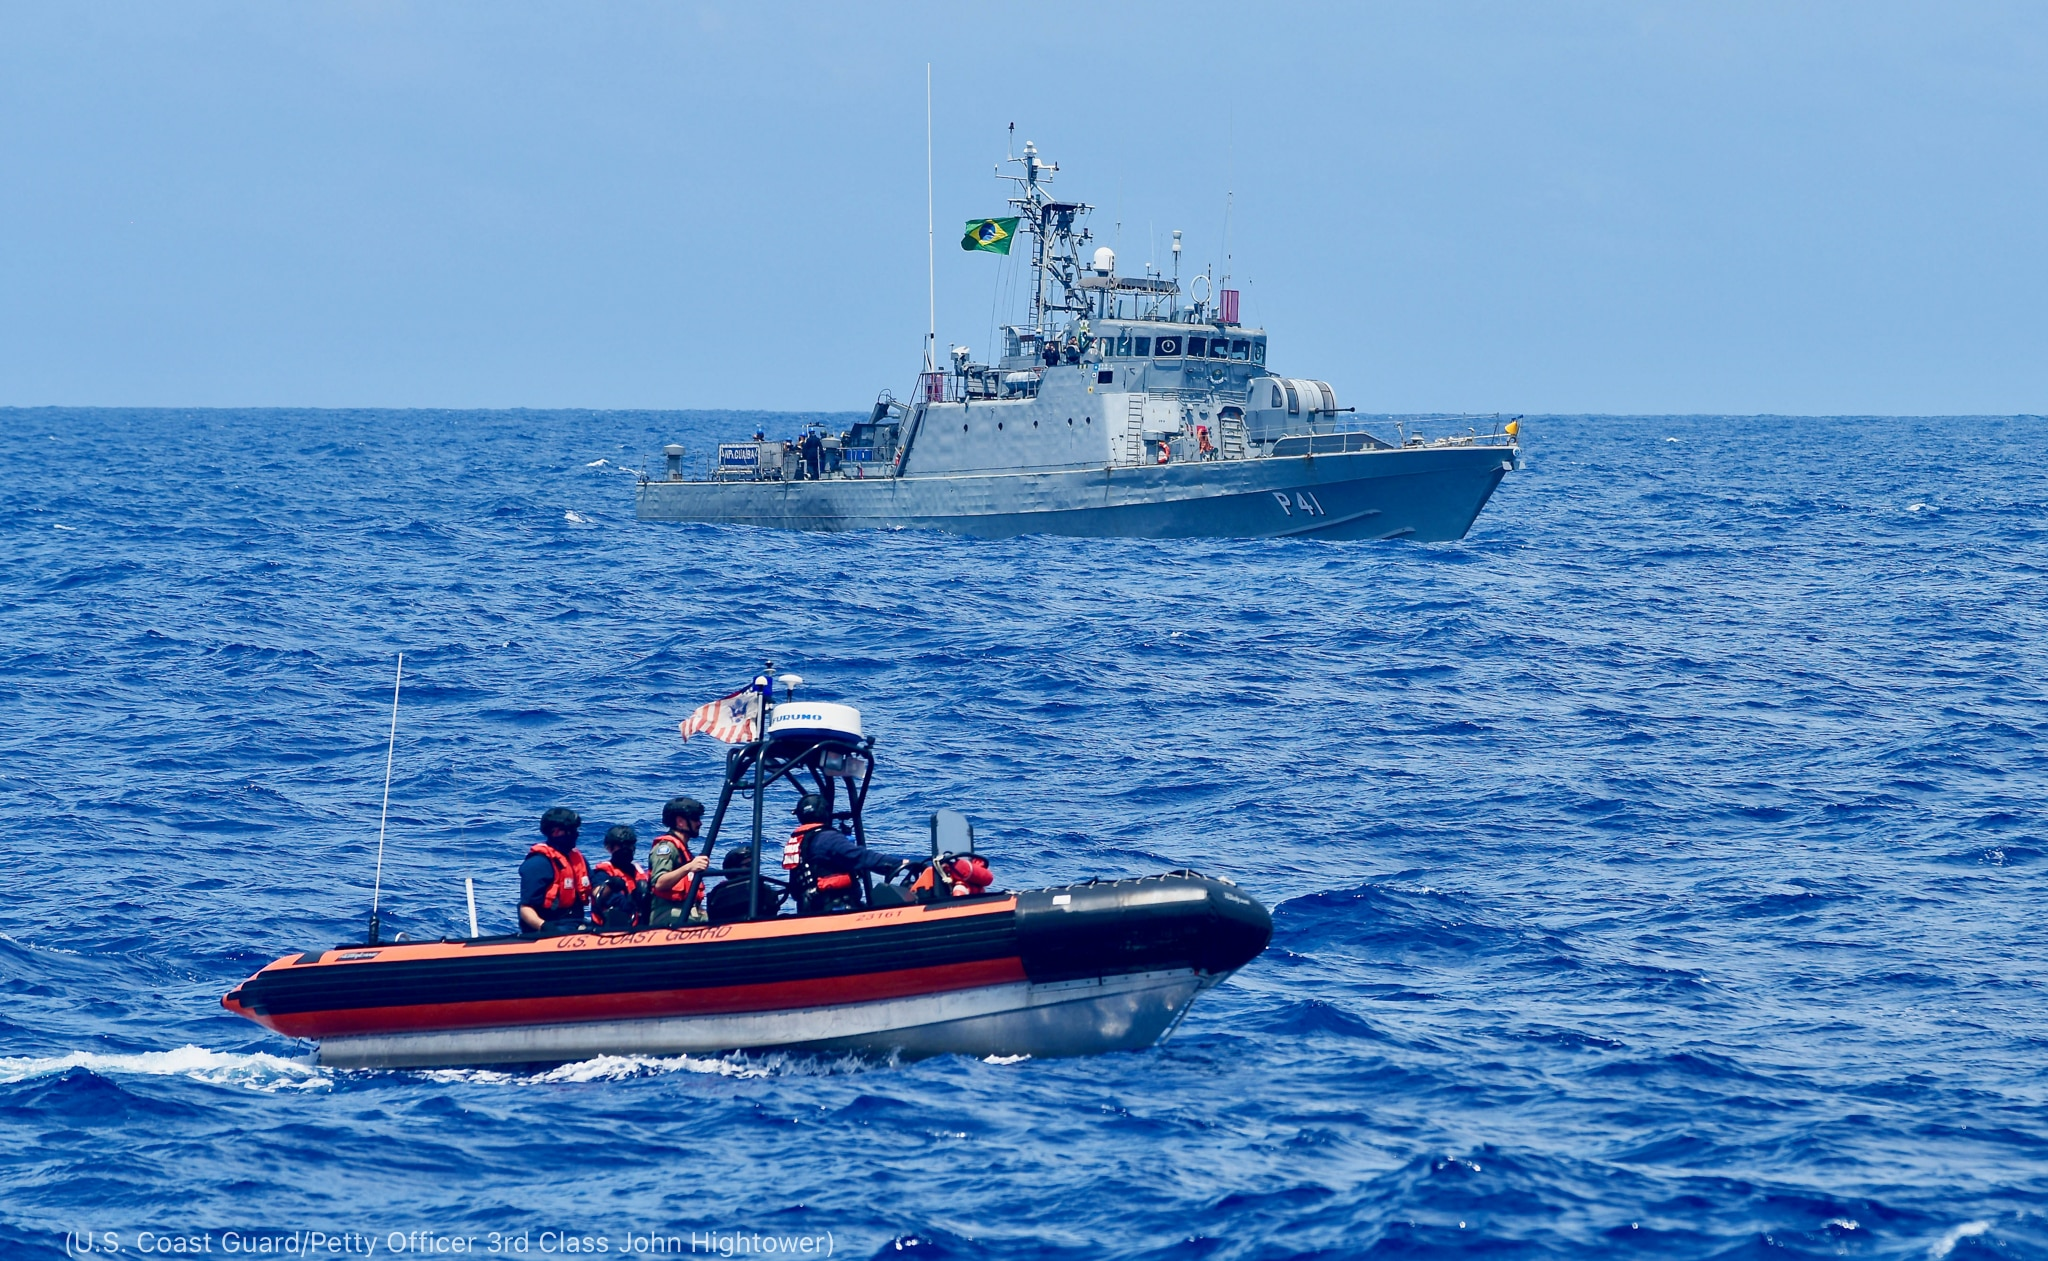 Small boat in front of navy ship during joint maneuvers (U.S. Coast Guard/Petty Officer 3rd Class John Hightower)